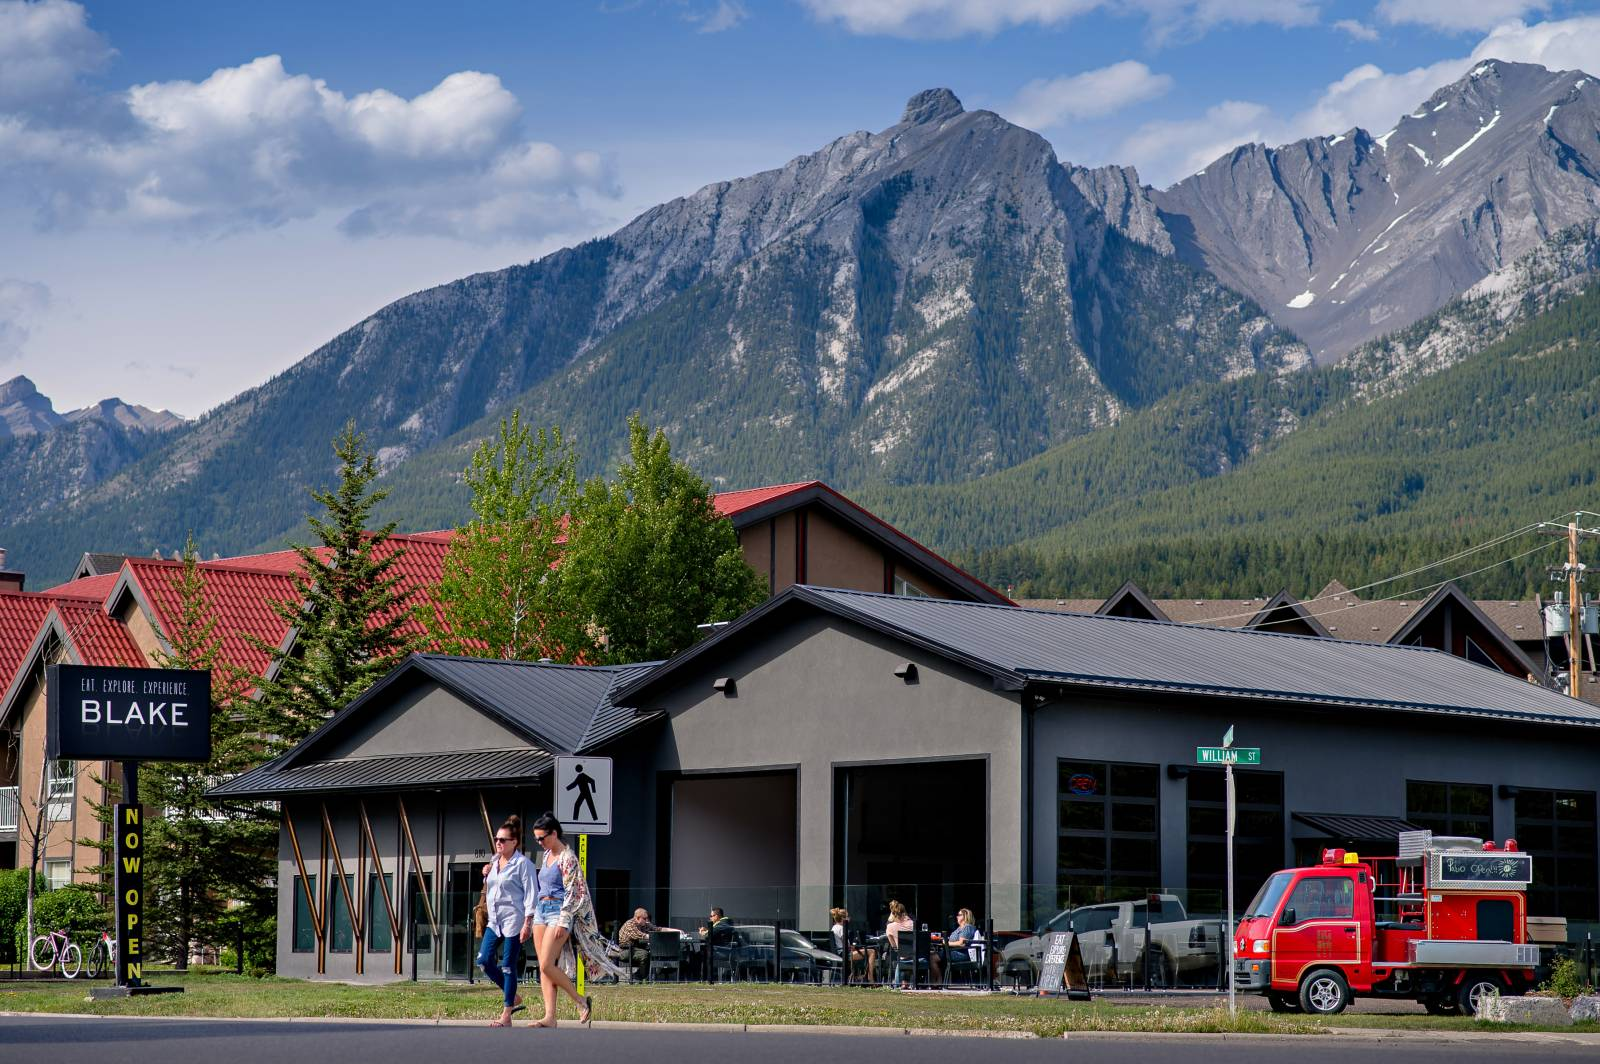 Top 5 Canmore Restaurants with a View   It really doesn't matter where you are in Canmore, you are surrounded by stunning views. We wanted to share our top five spots for great food AND great views.    PD3 by Blake  . The intimate fine dining restaurant atop a fully renovated 1962 Leland double decker bus has the perfect view of Canmore's famous three sisters. You'll be treated to the outstanding 5 course prix fixe menu (with a glass of  on tap  Prosecco to start) while you watch the golden evening light sweep across the mountains.   Read more